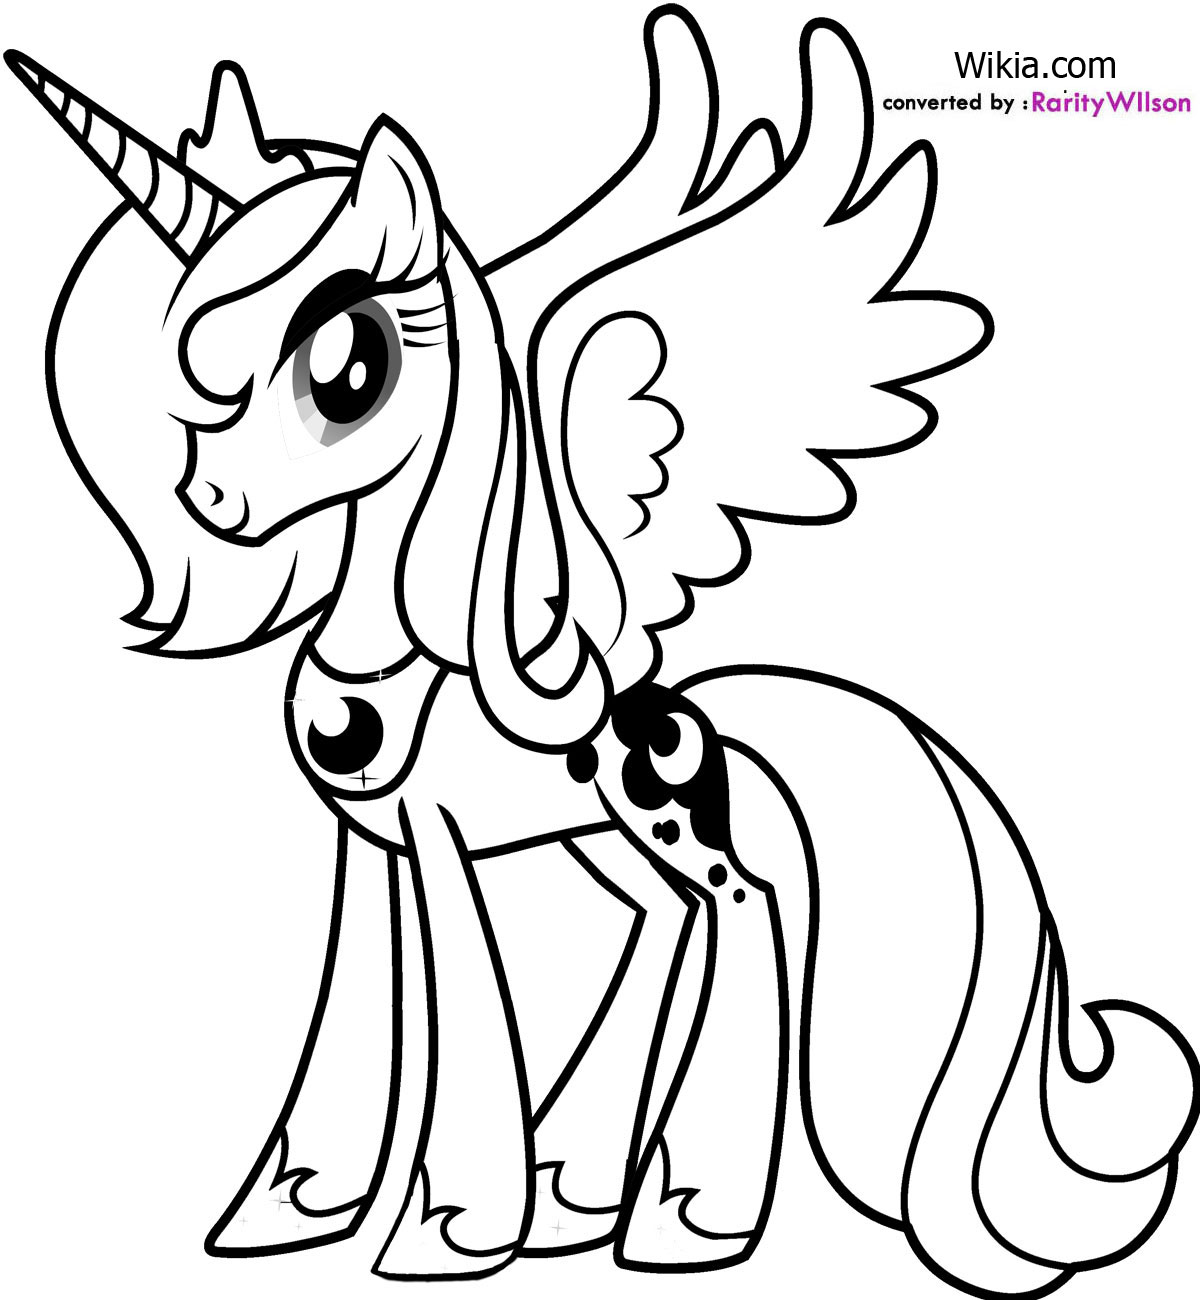 Mlp Human Chibi Coloring Pages Coloring Pages My Pony Princesses Coloring Pages